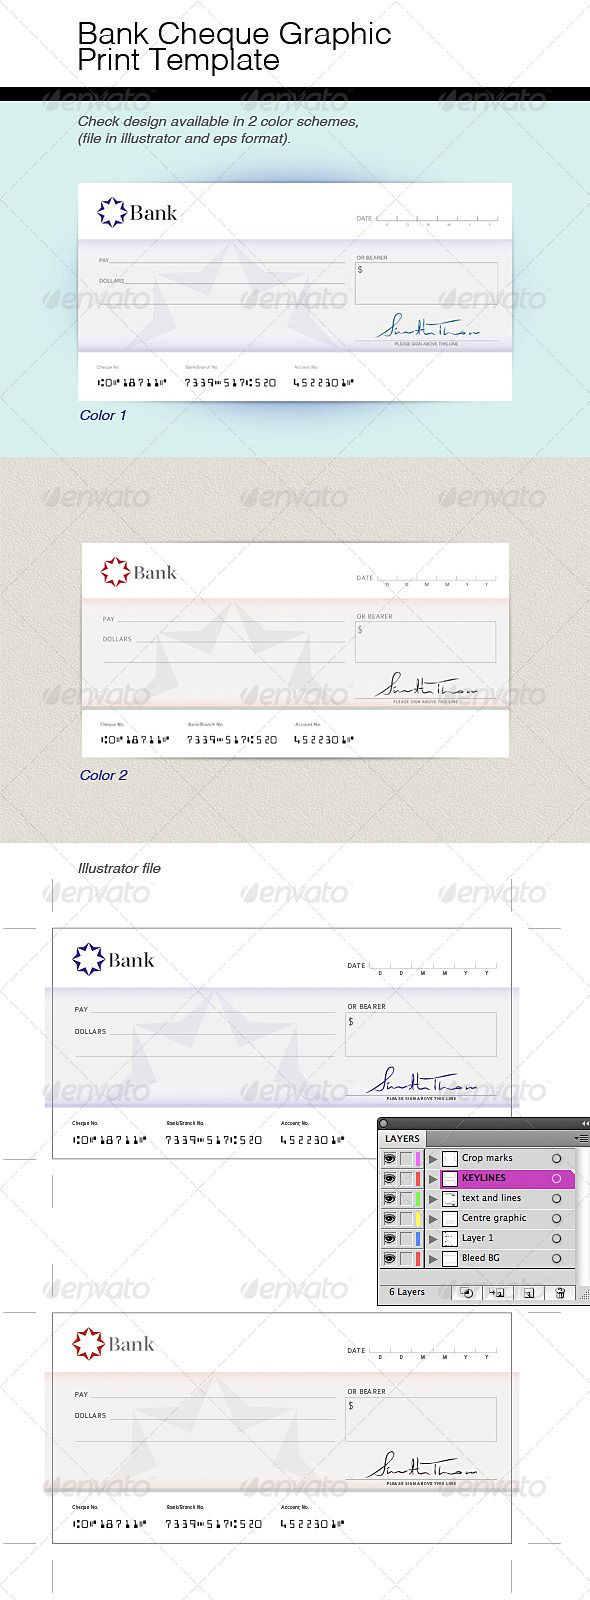 Pin by bashooka web graphic design on random design template bank check graphic print template vector eps cheque mock business available here cheaphphosting Choice Image